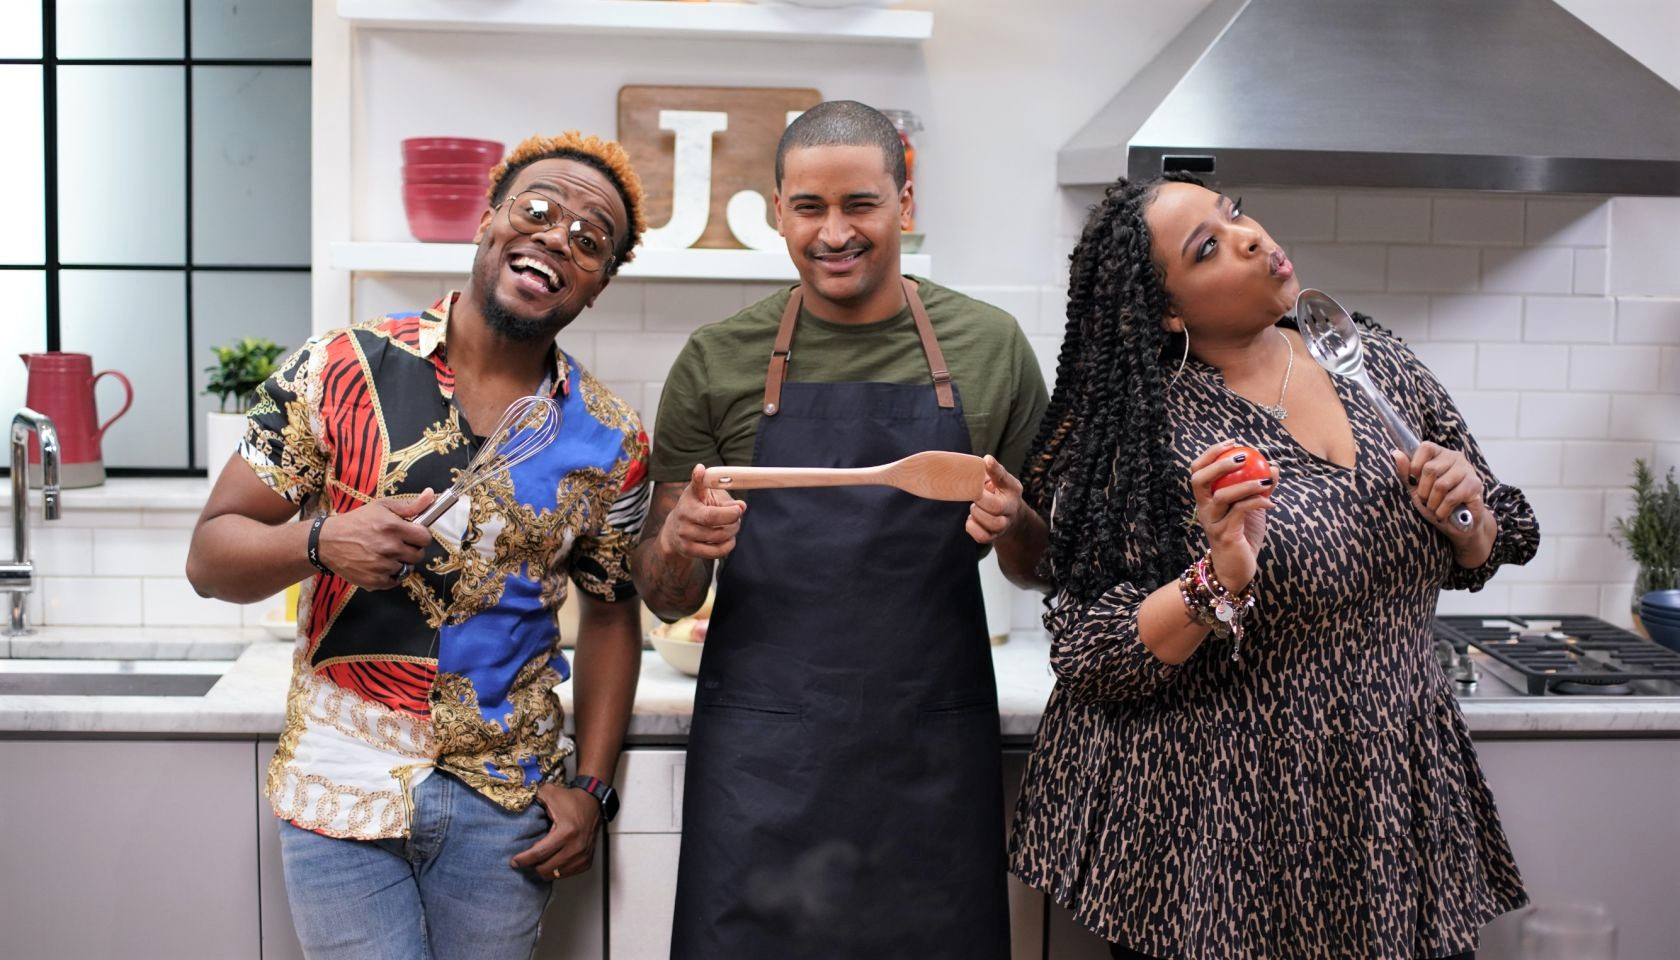 ravis-Greene-And-Kierra-Sheard-Stop-By-for-a-Seafood-Feast-On-Cleo-TVs-Just-Eats-With-Chef-JJ-faith-health-and-home